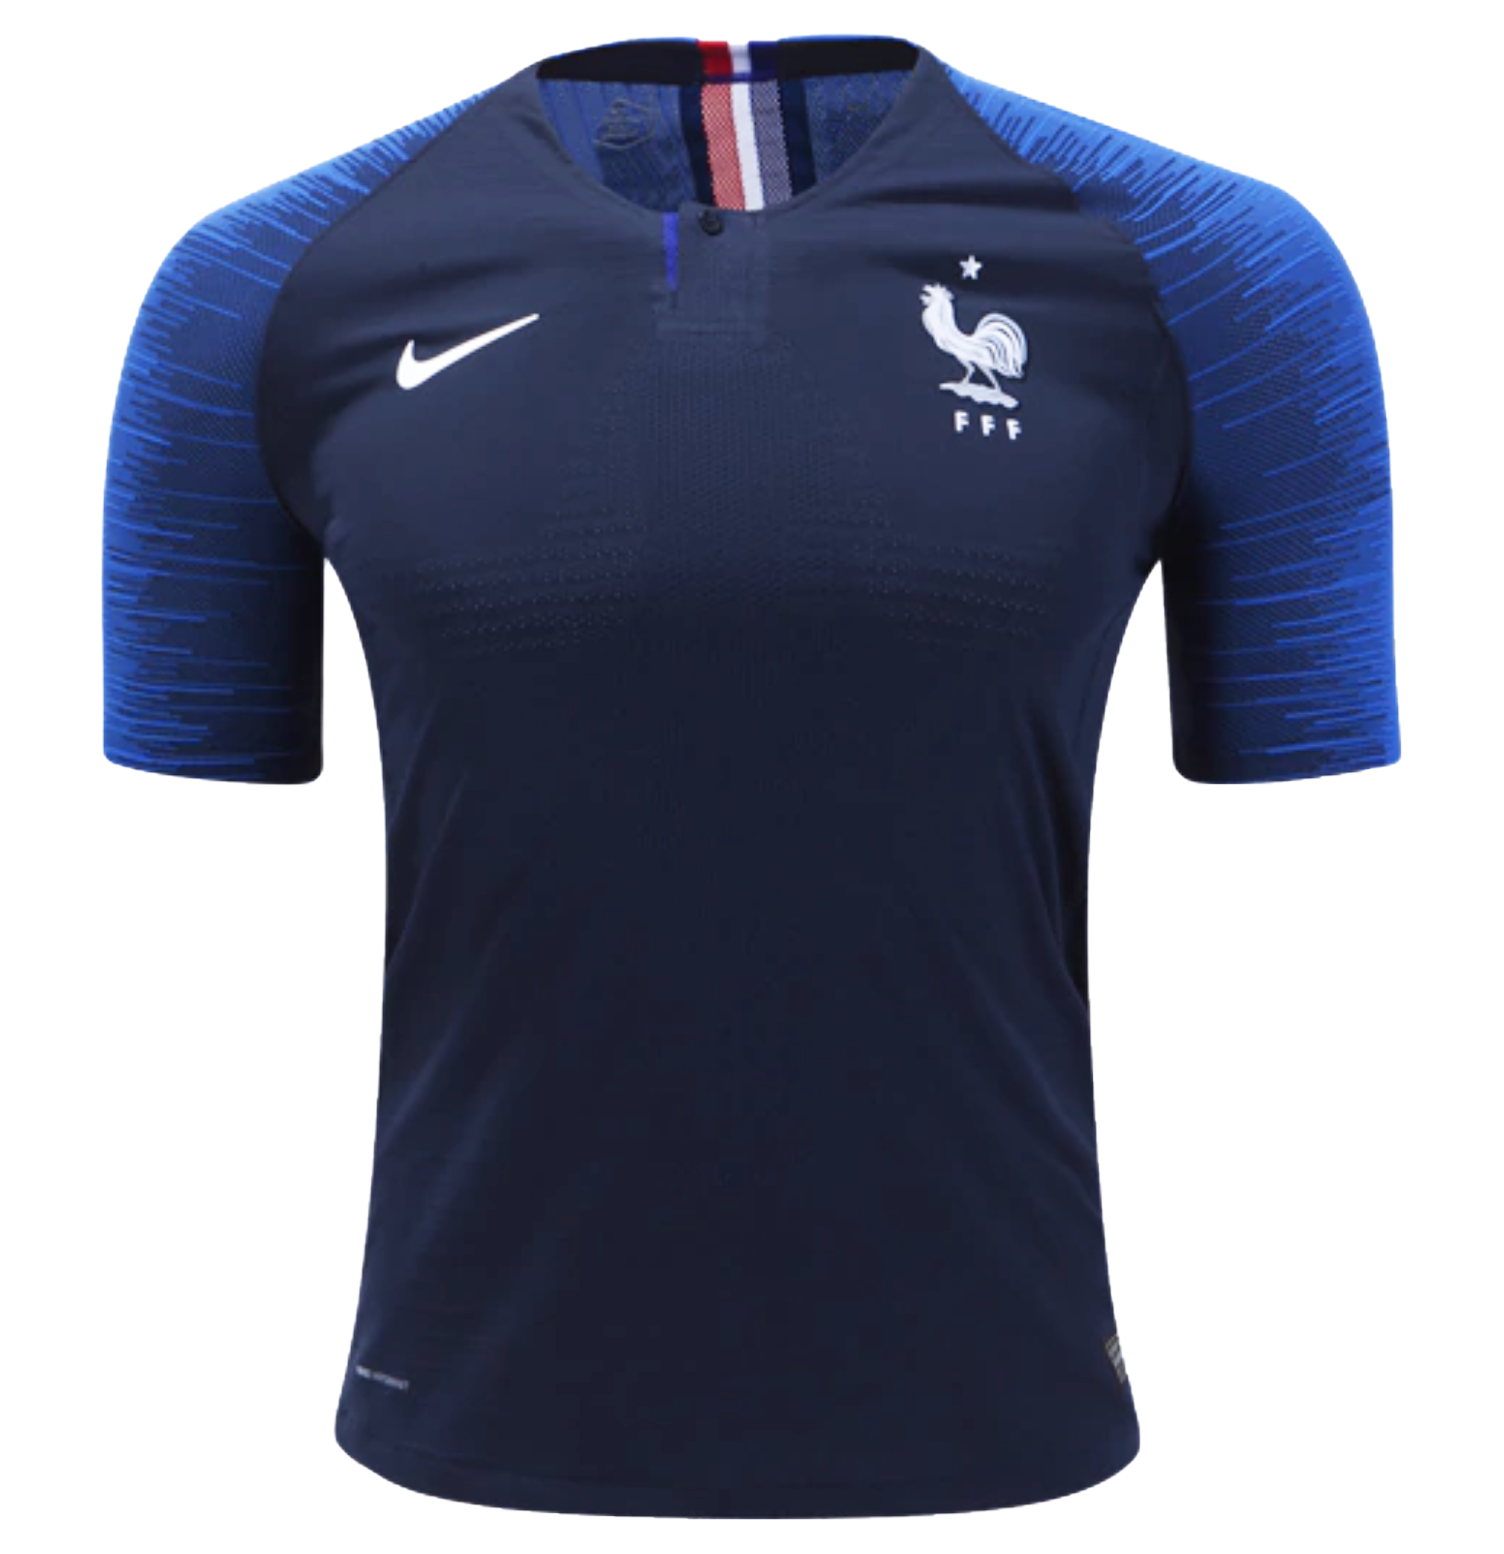 02_france(home).png